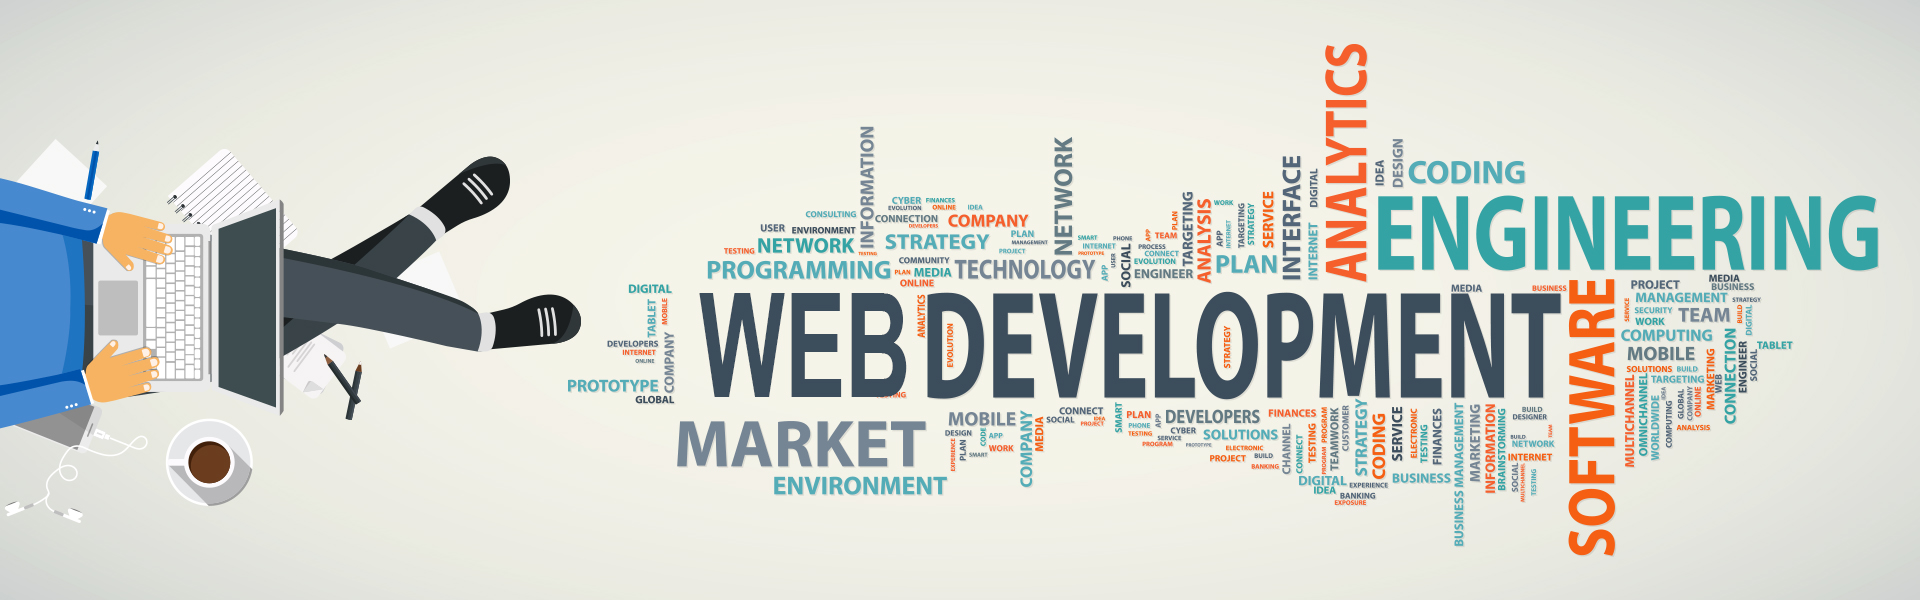 Website Development Company | Custom Web Design Services